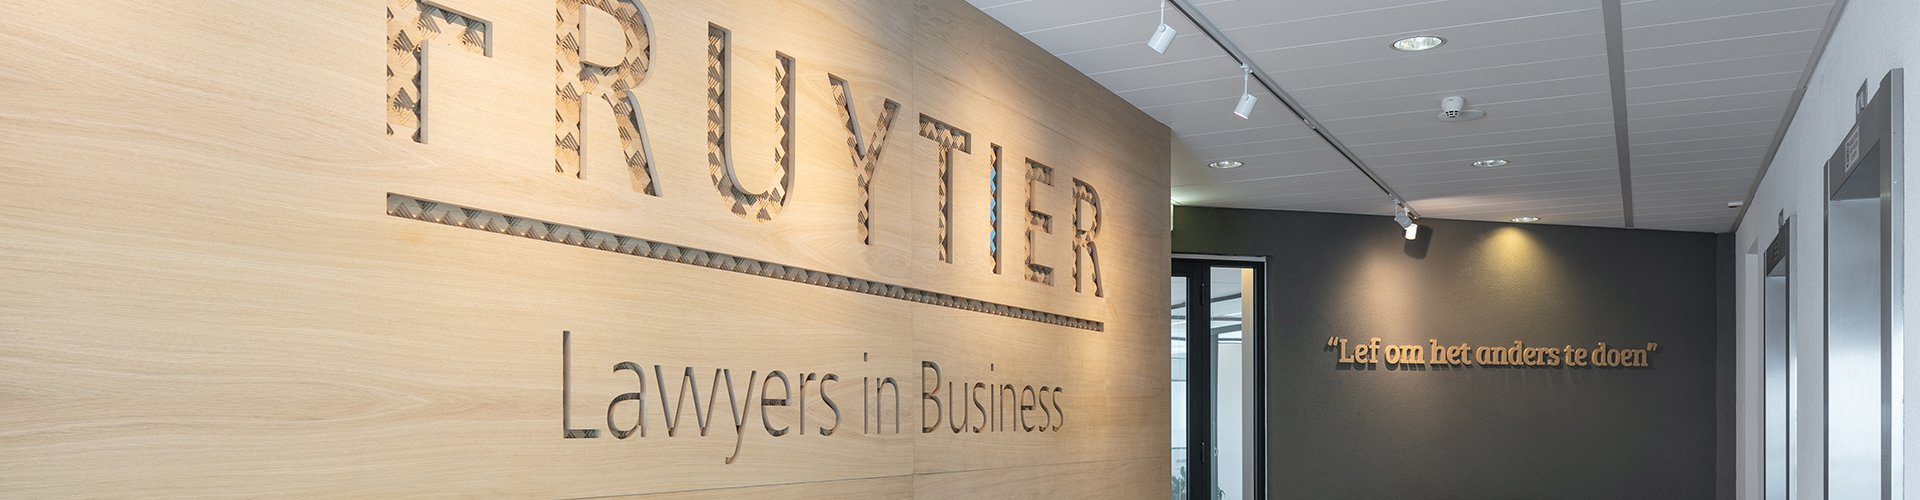 Fruytier Lawyers in Business